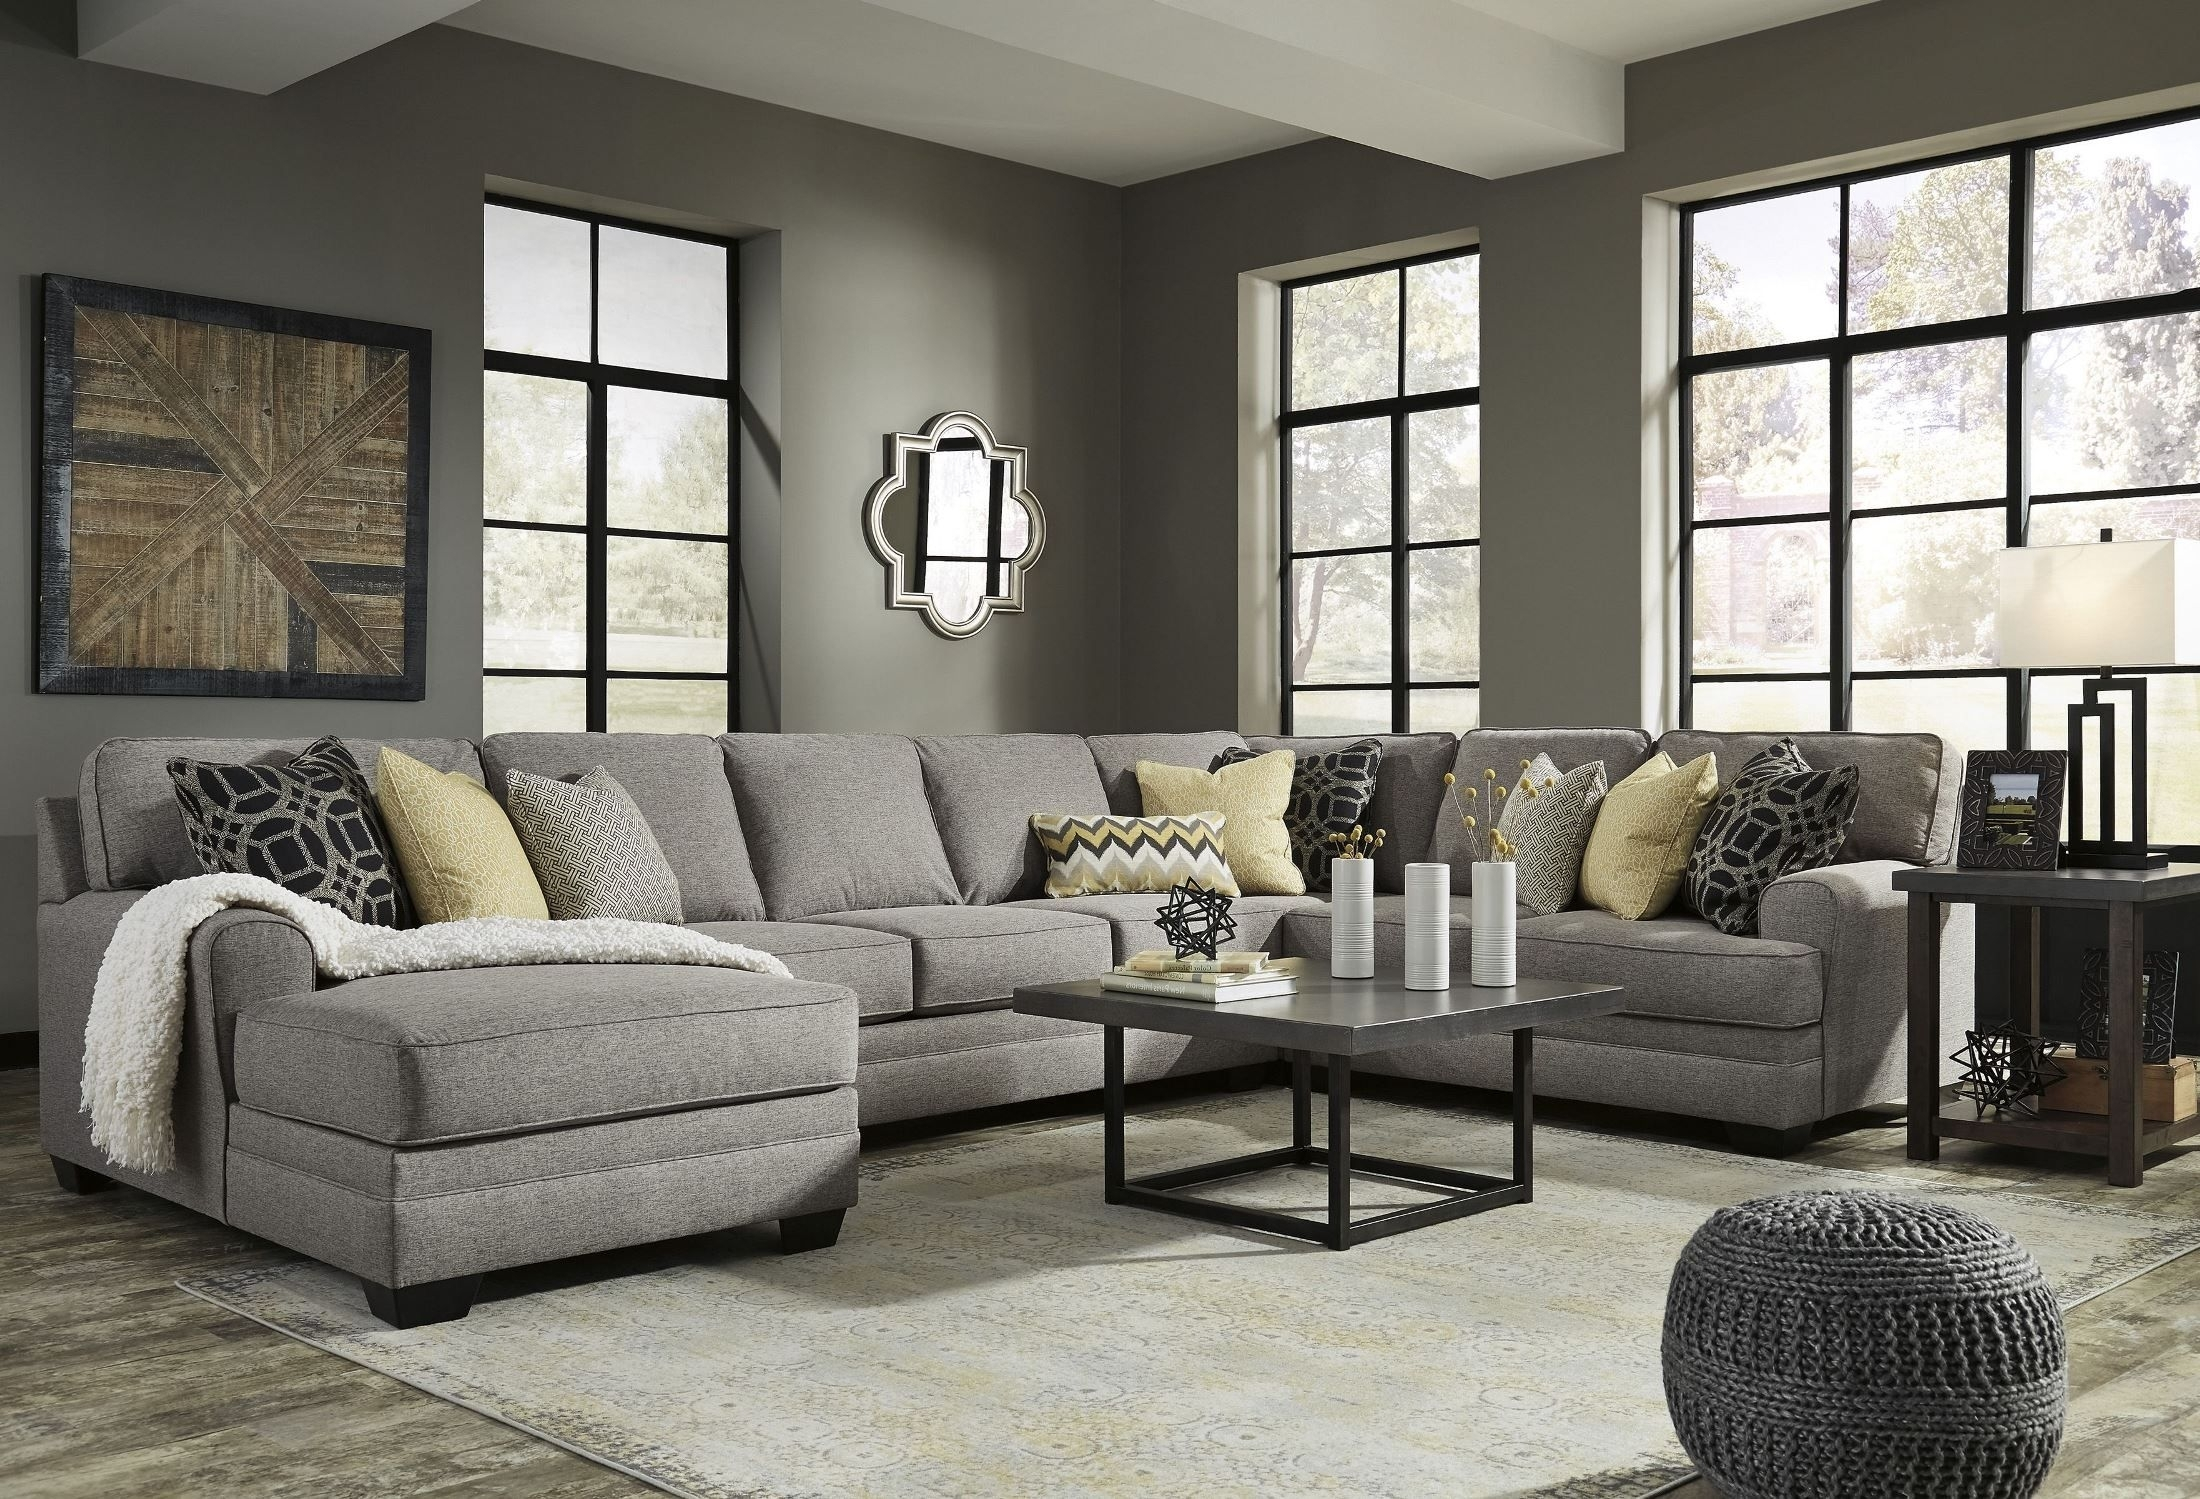 Large Chaise Sofas | Baci Living Room In Delano 2 Piece Sectionals With Laf Oversized Chaise (View 22 of 30)